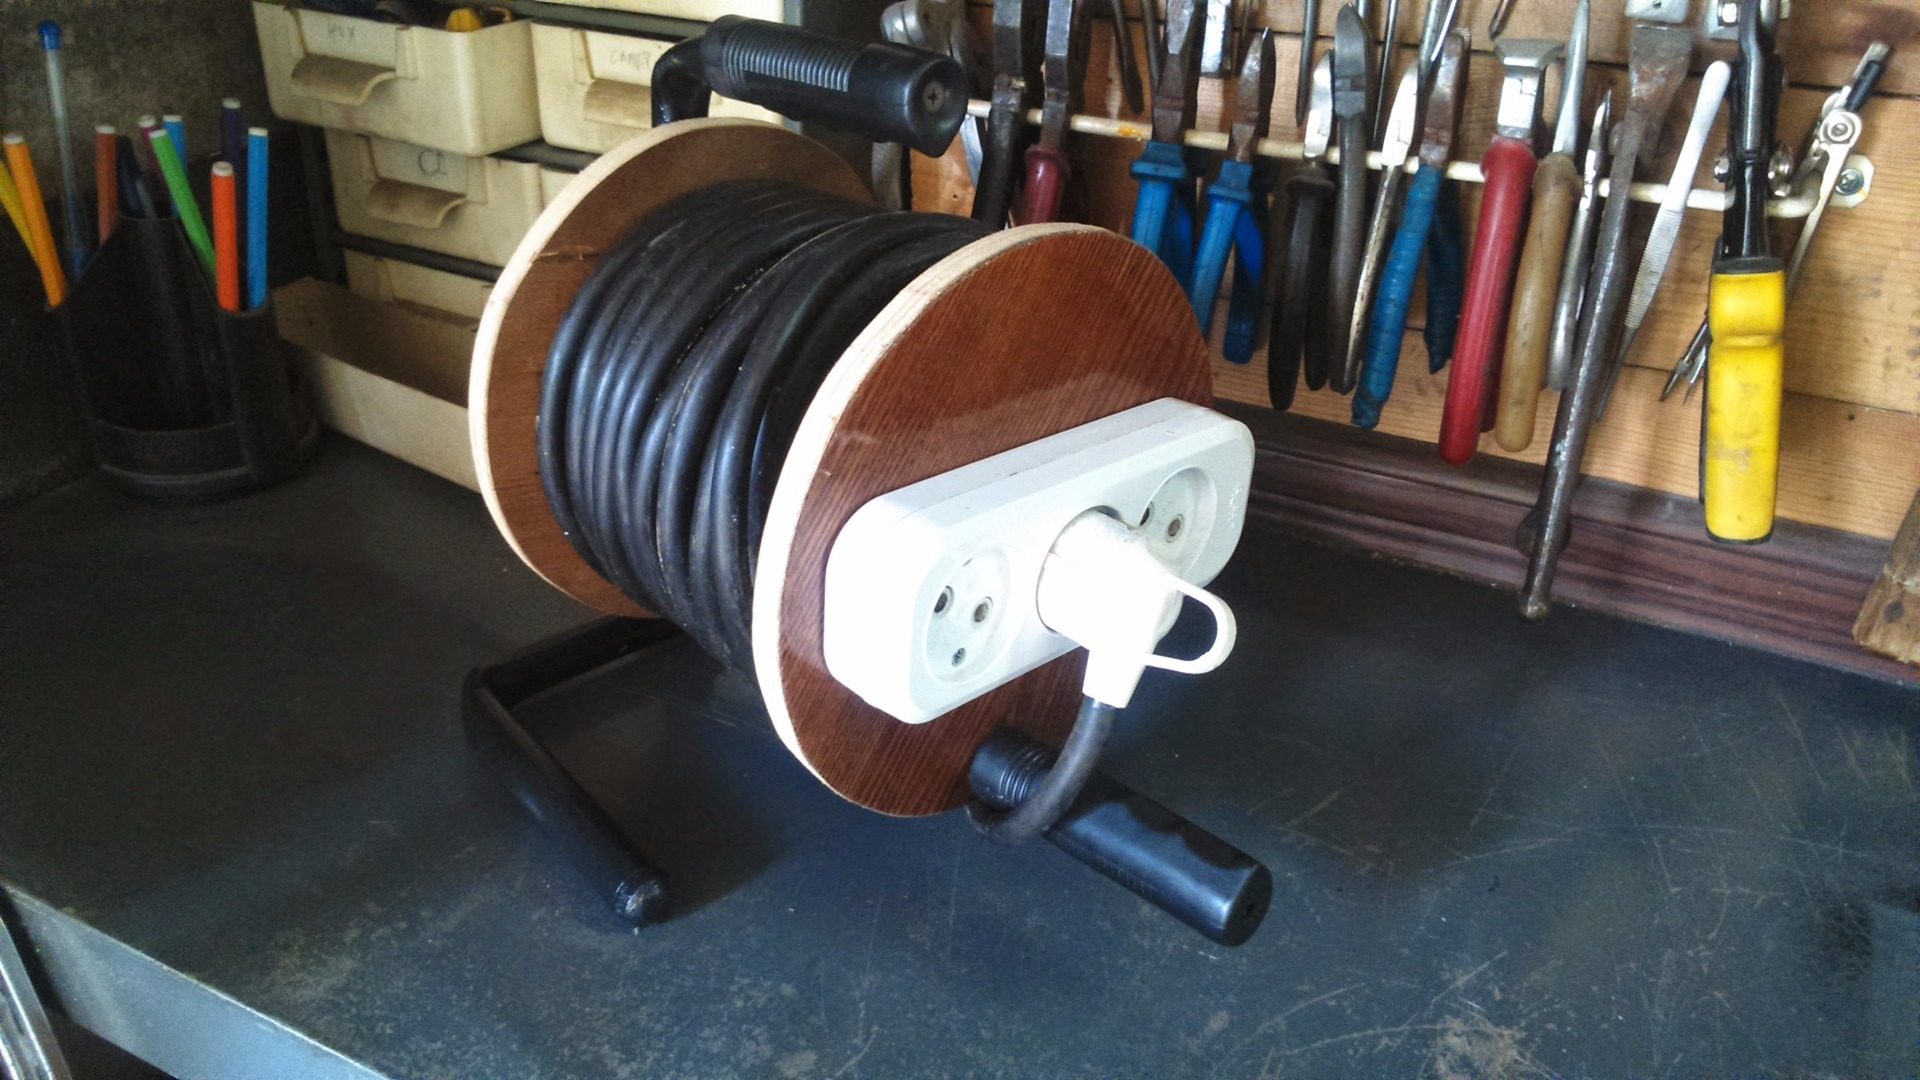 Picture of Homemade Extension Cord on the Reel